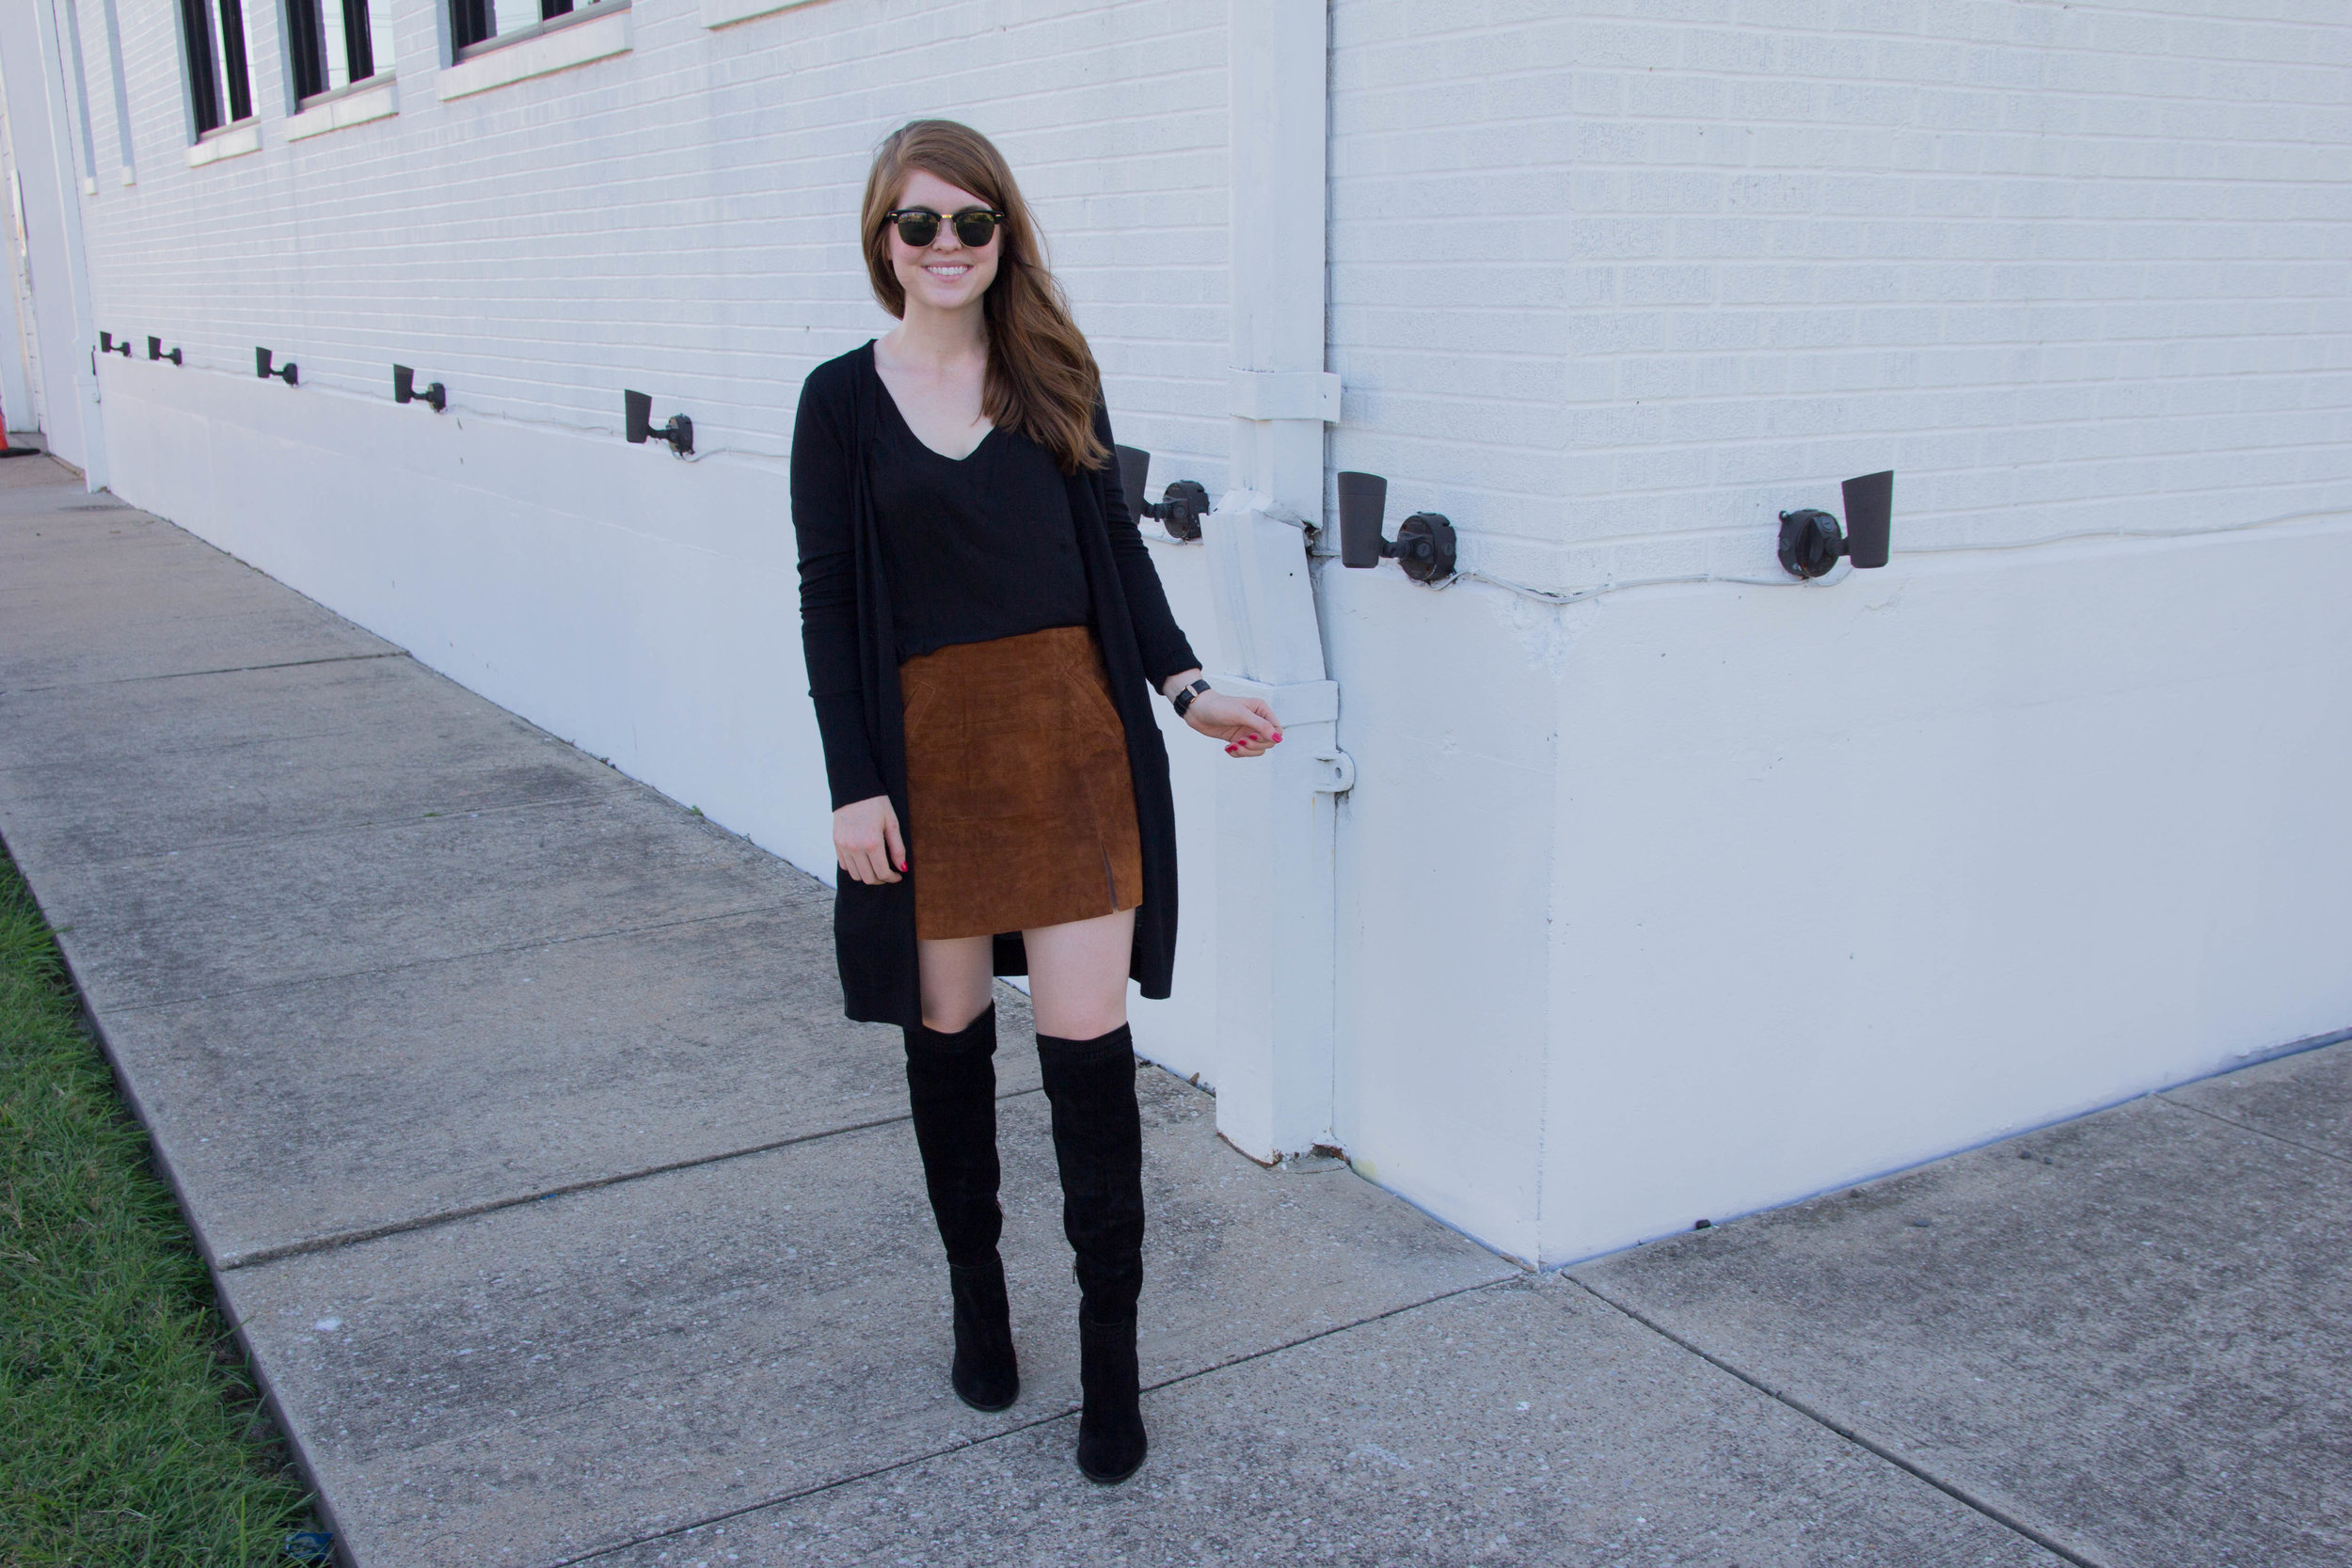 nordsrom anniversary sale 2017, best of shoes, vince camuto Madolee over the knee boots, blanknyc suede leather skirt, halogen long open front cardigan, dallas fashion blogger, lments of style